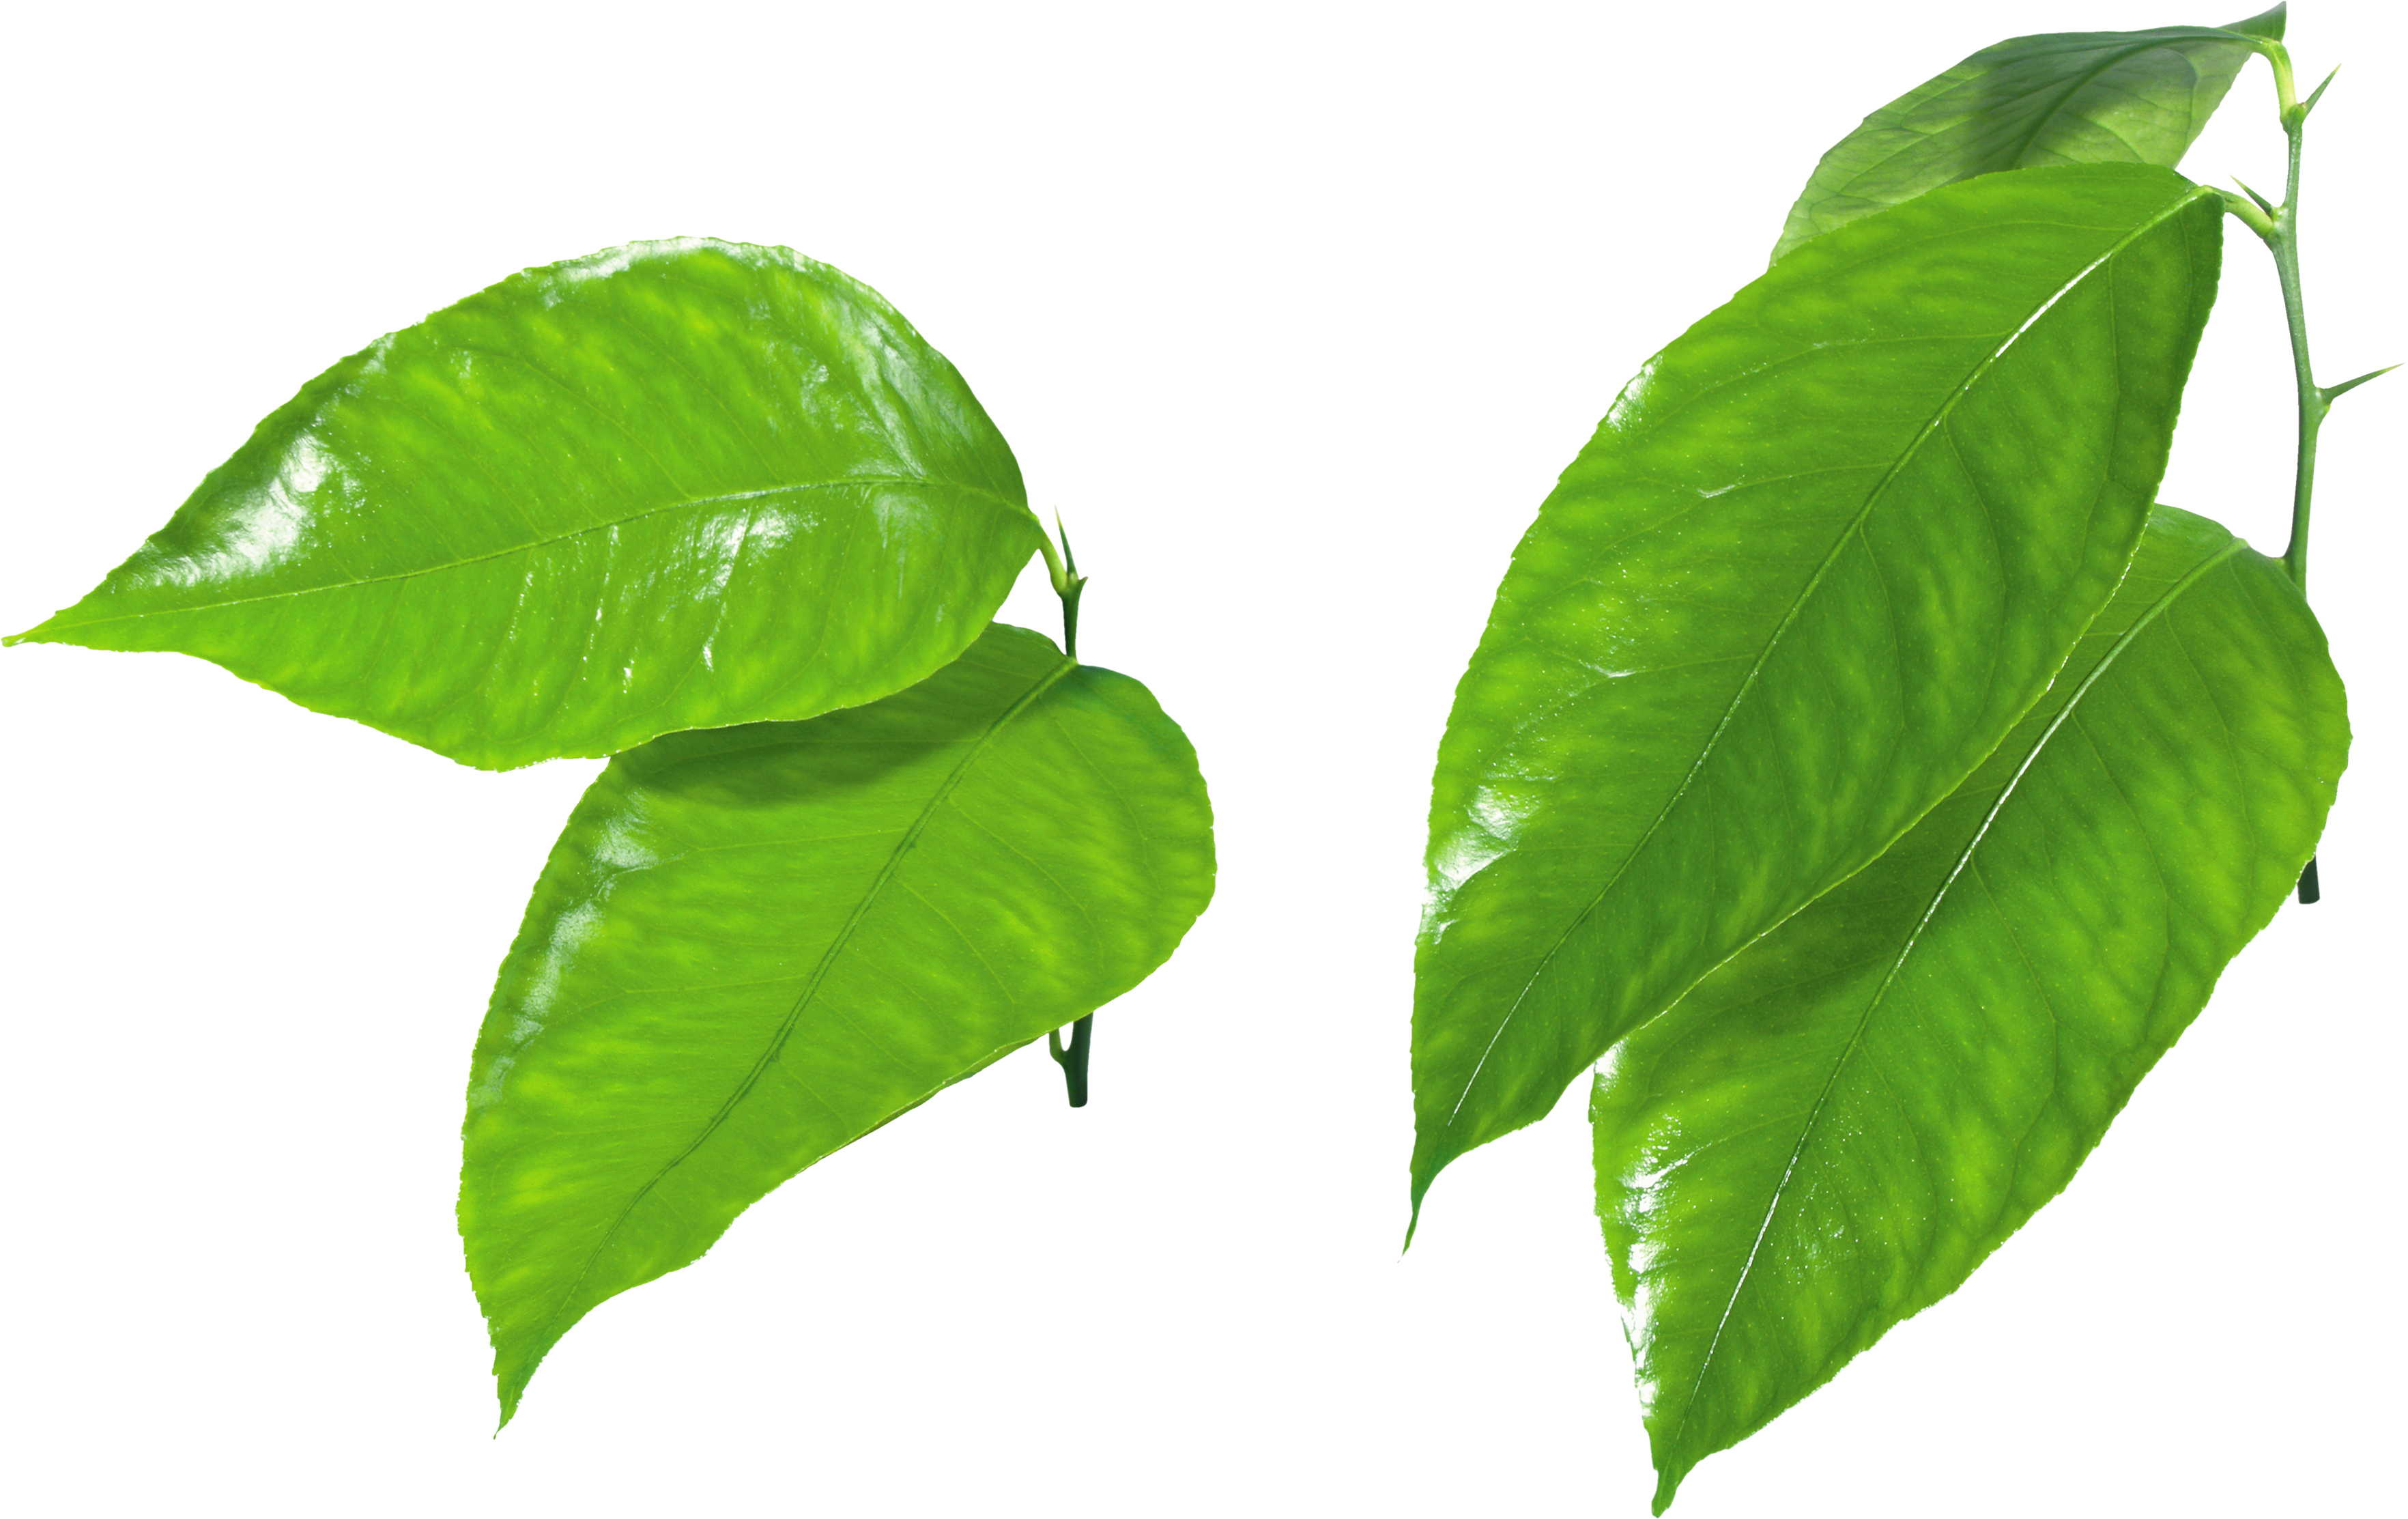 3528x2225 Green Leaves Png